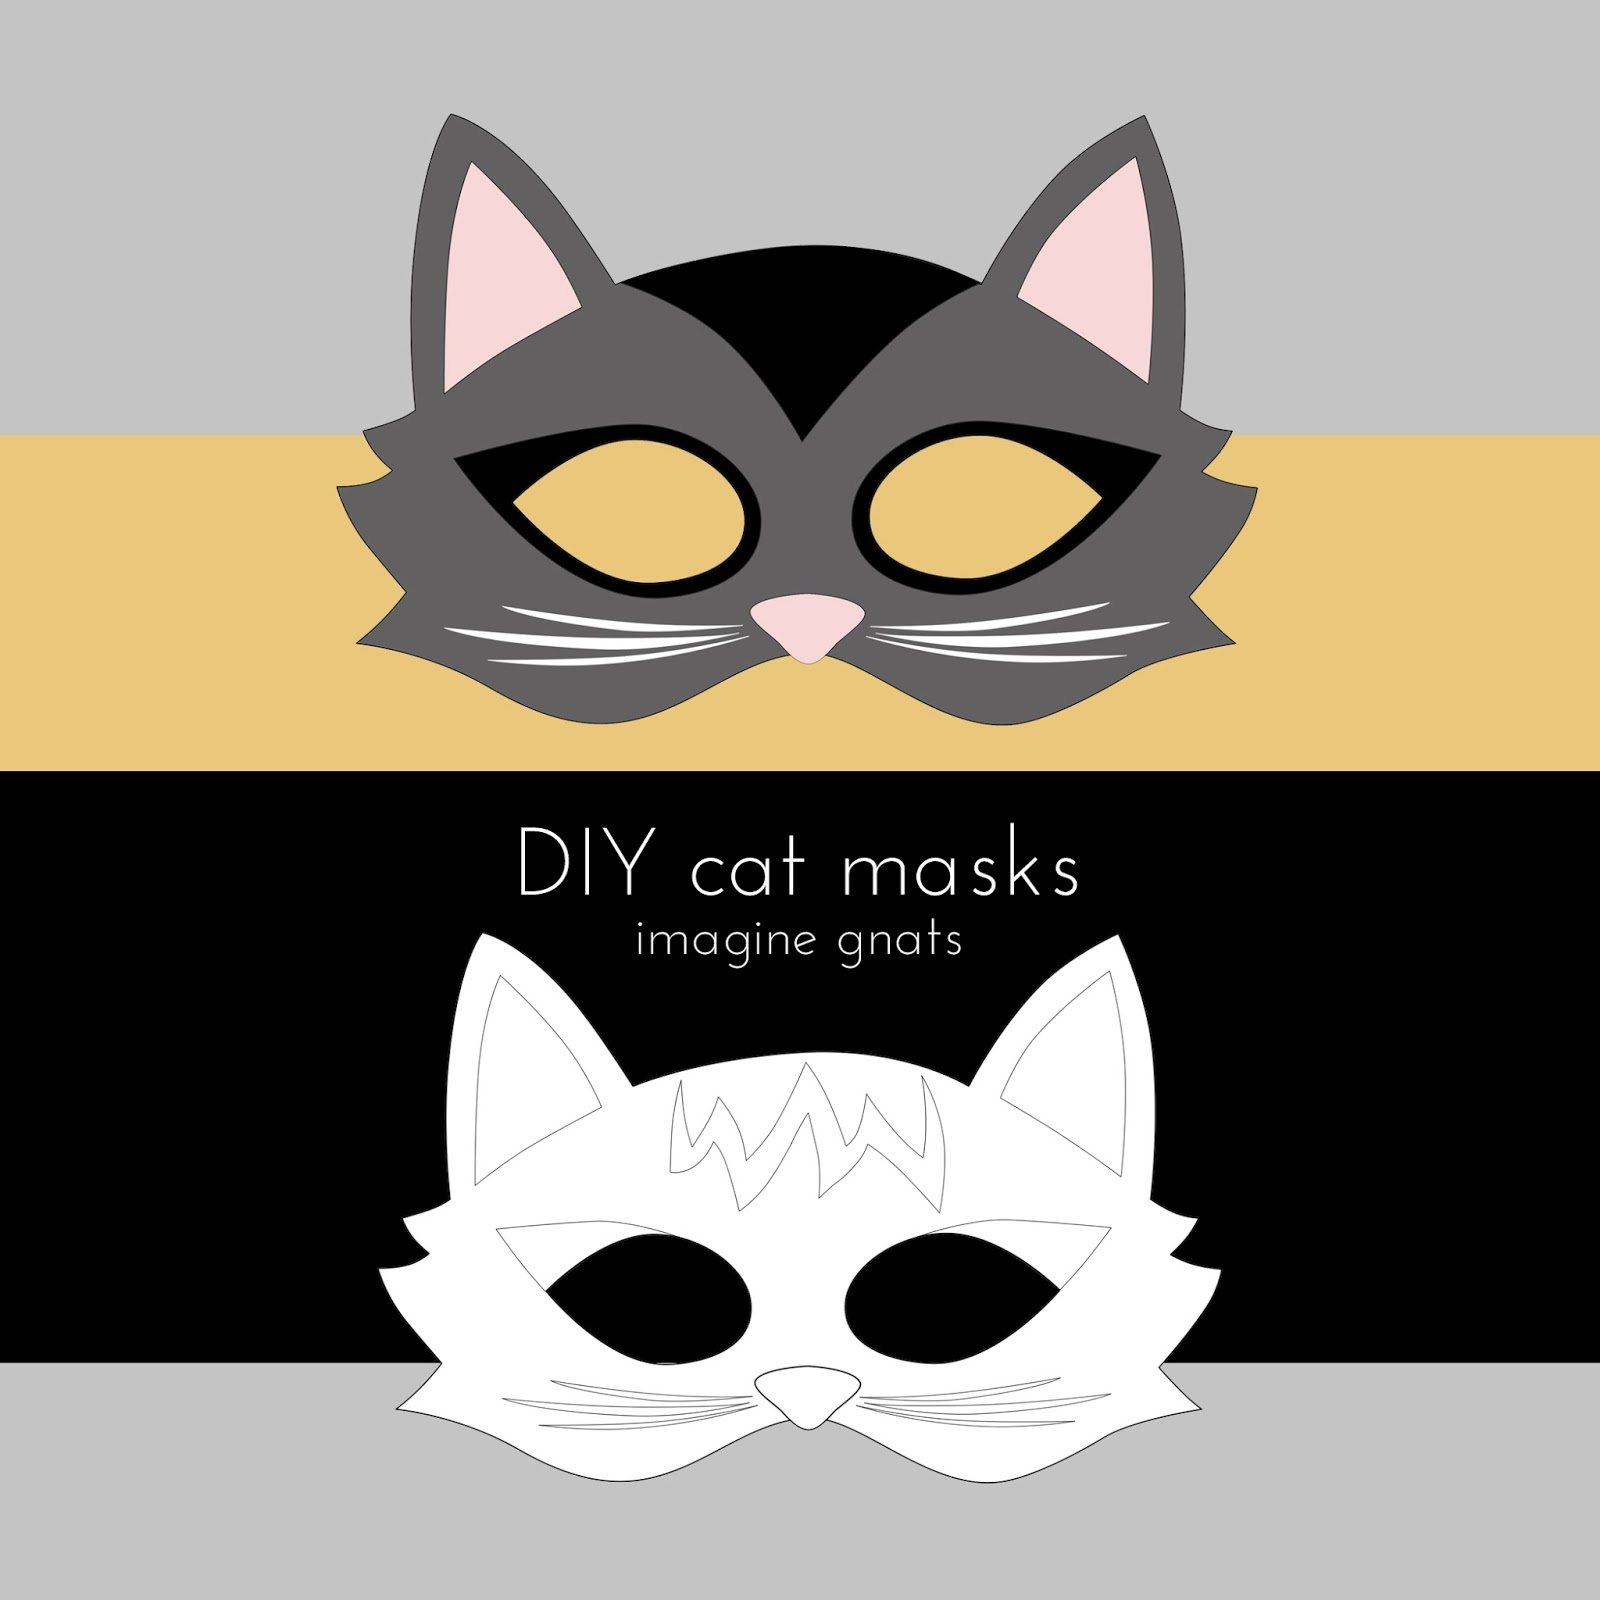 Imagine gnats craft handmade costumes cat mask tutorial for Caterpillar mask template